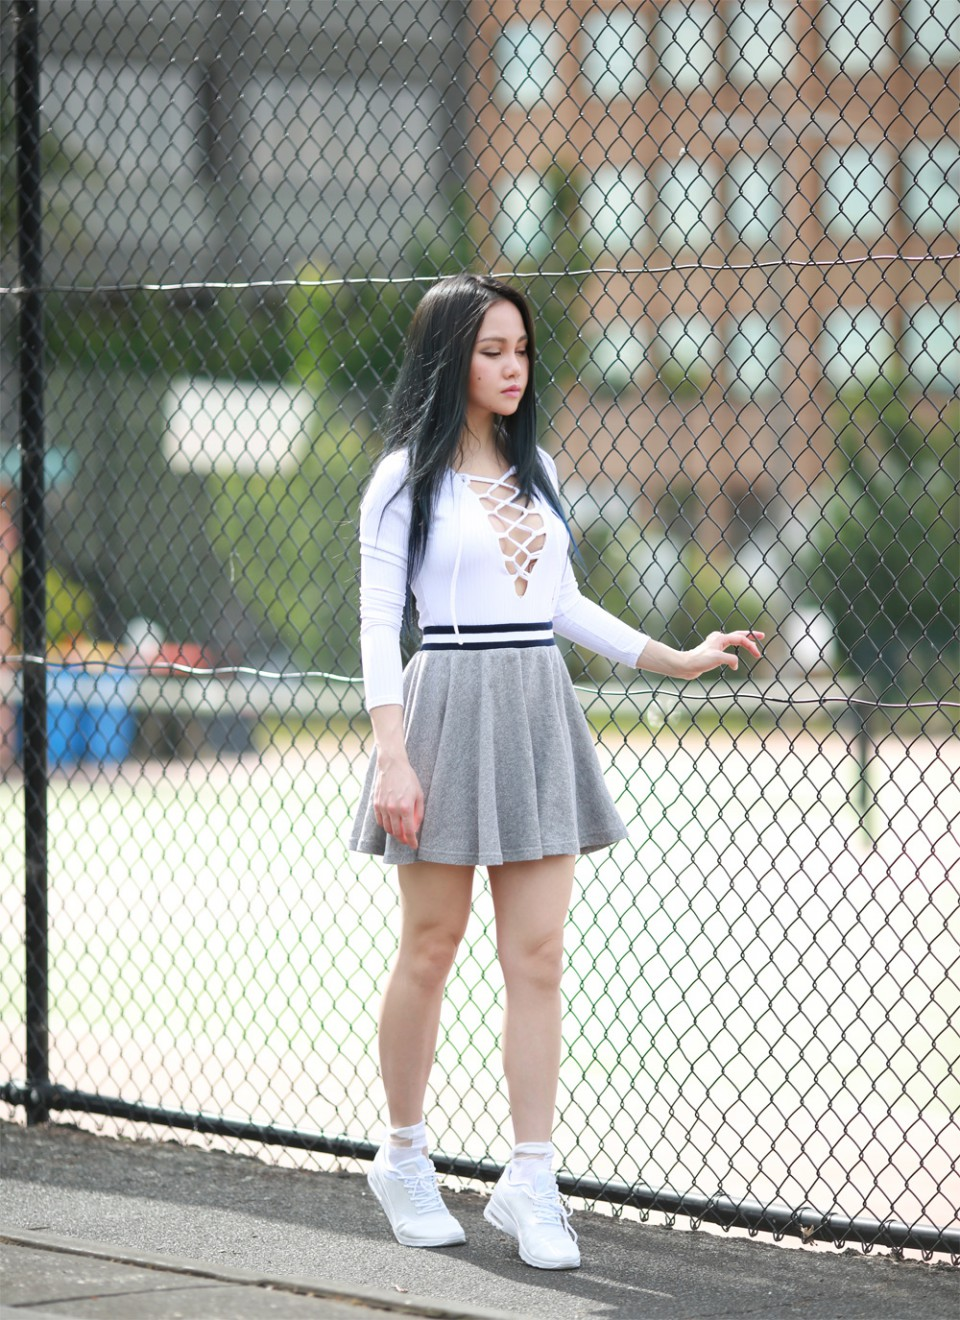 tennis_court_chloeting_04